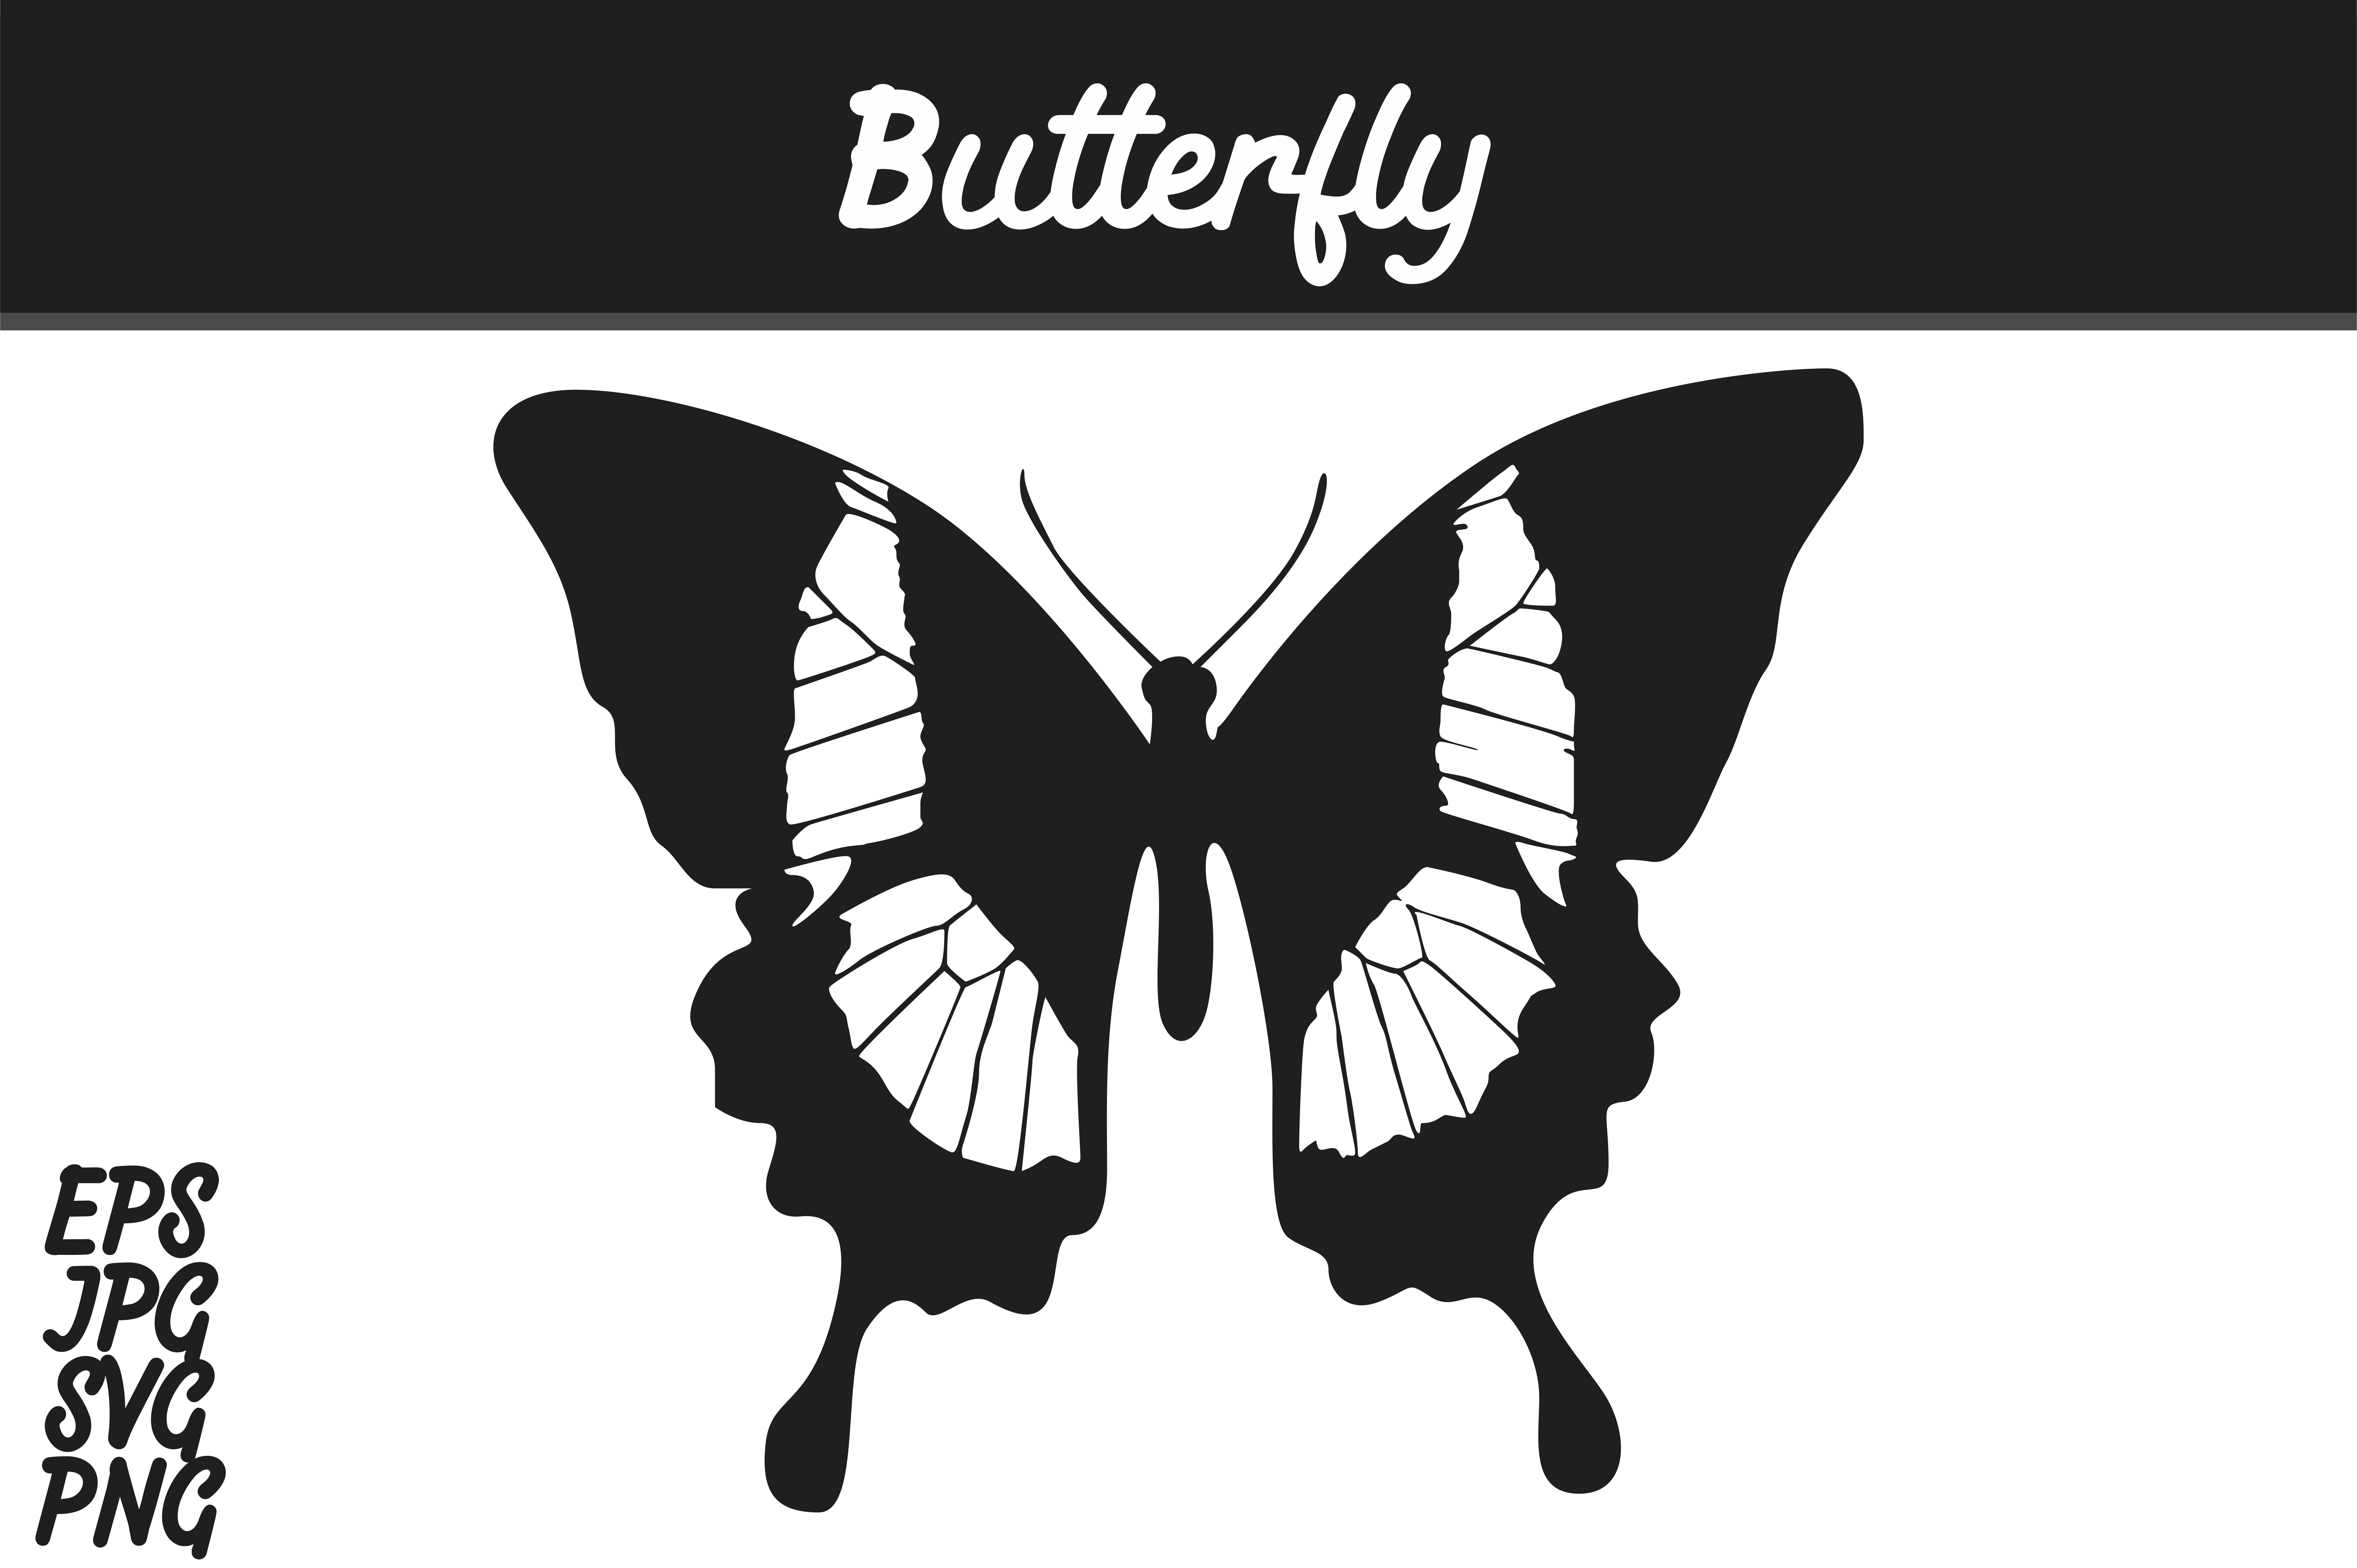 Download Free Butterfly Silhouette Svg Vector Image Graphic By Arief Sapta for Cricut Explore, Silhouette and other cutting machines.